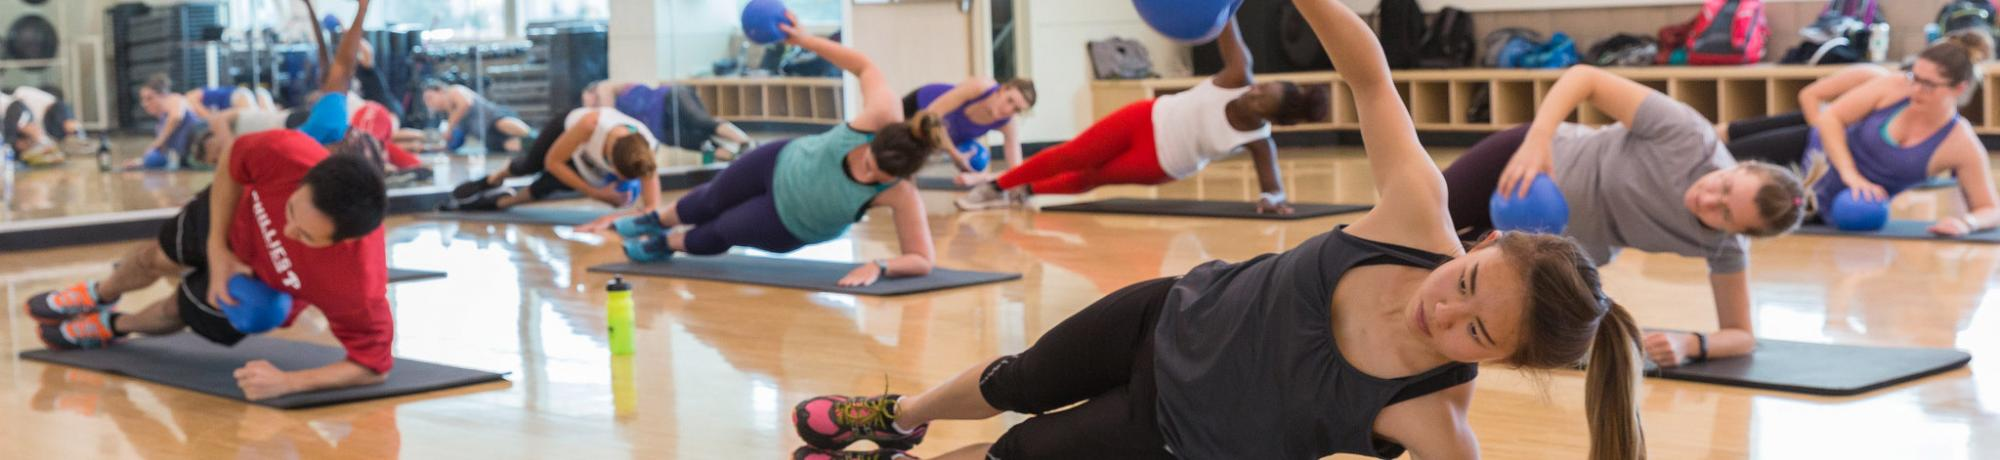 Students in exercise studio on yoga mats in side plank position holding small exercise balls